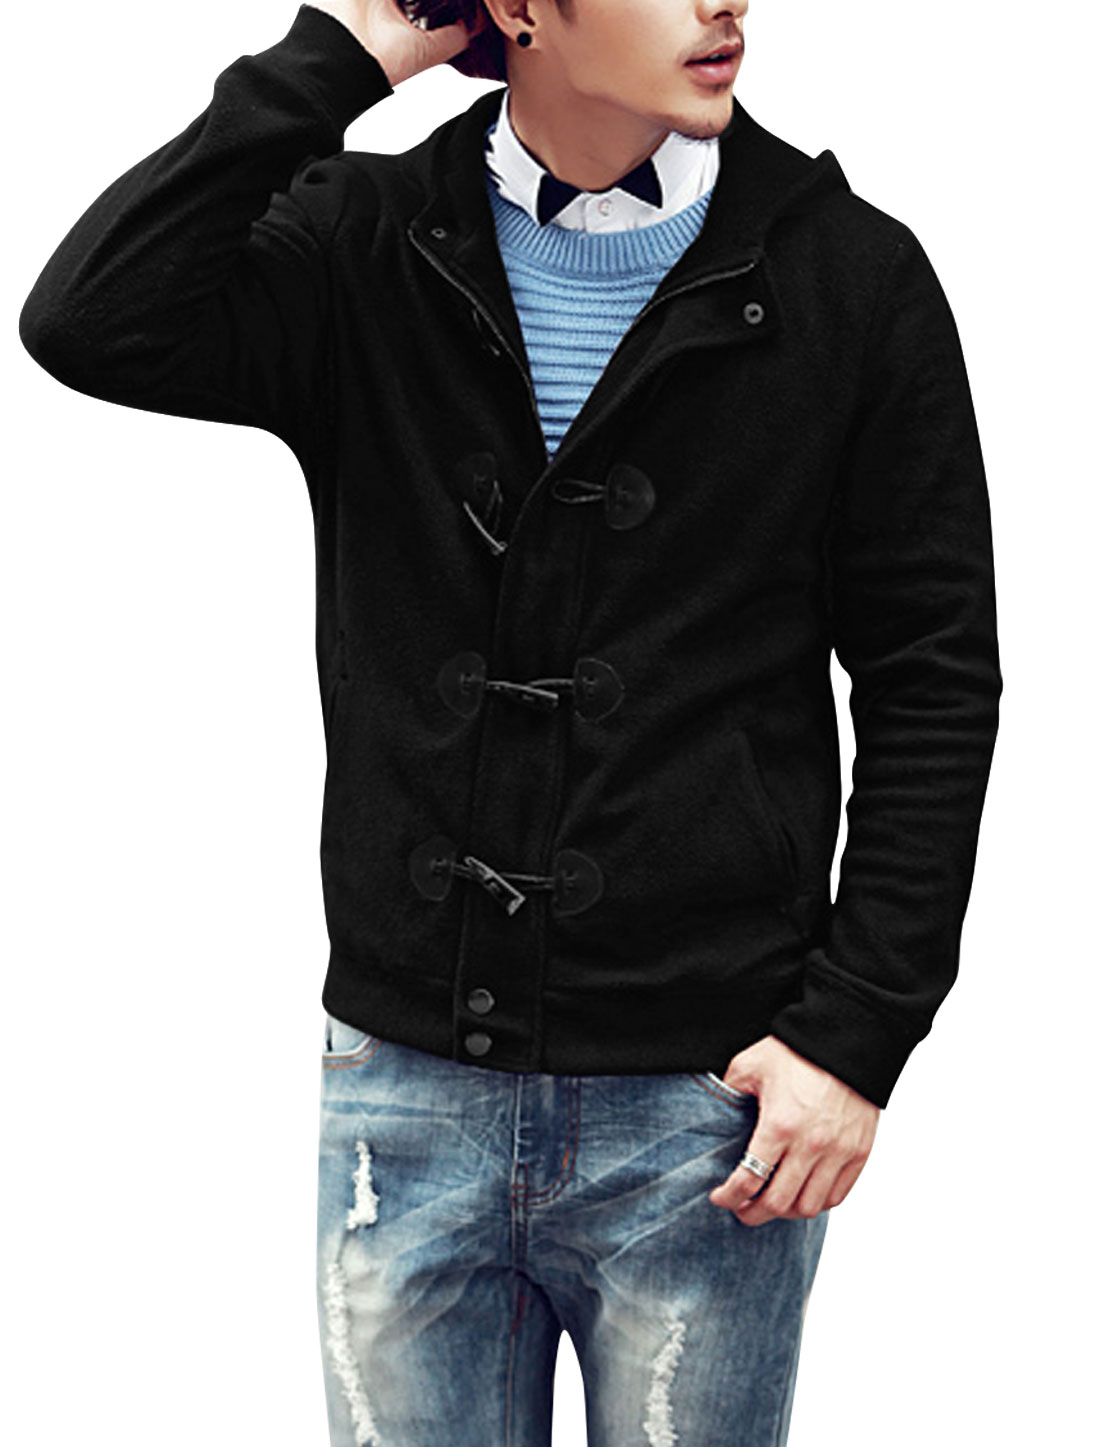 Men Fashion Toggle Buttons Closure Two Pockets Front Fleece Jacket Black M